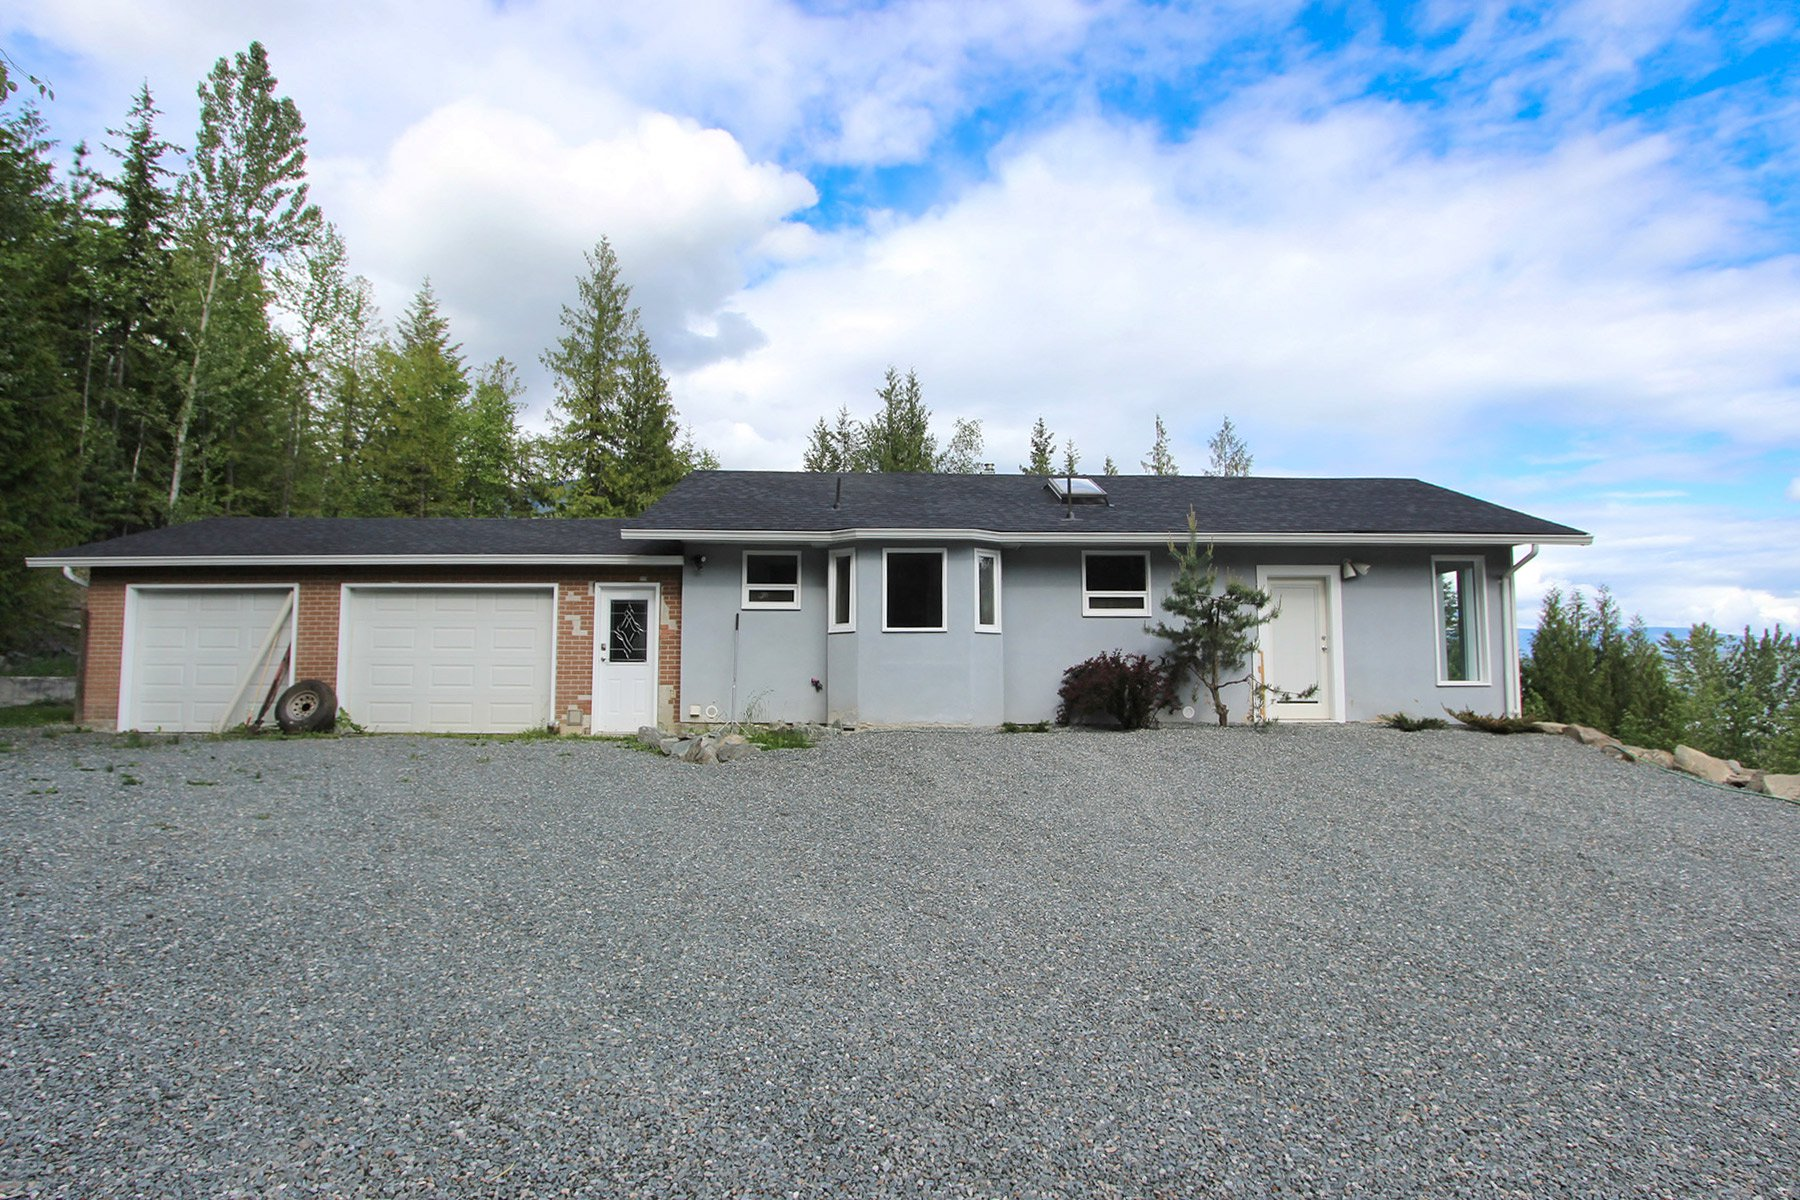 Photo 69: Photos: 6831 Magna Bay Drive in Magna Bay: House with Acreage for sale : MLS®# 10205520